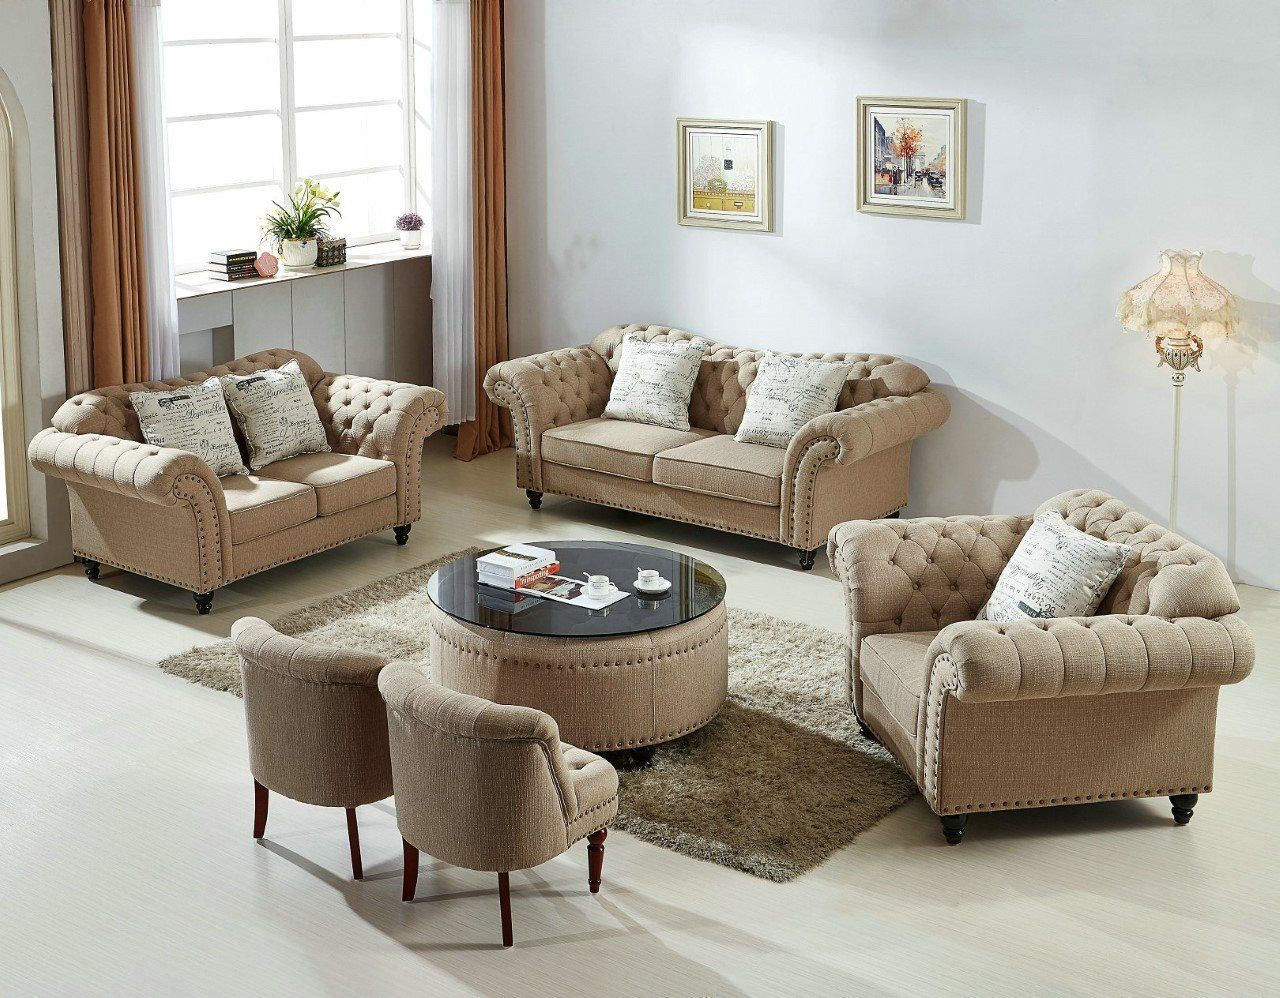 Norway Living Room Collection Living Room Sofa Sofa Set Classy